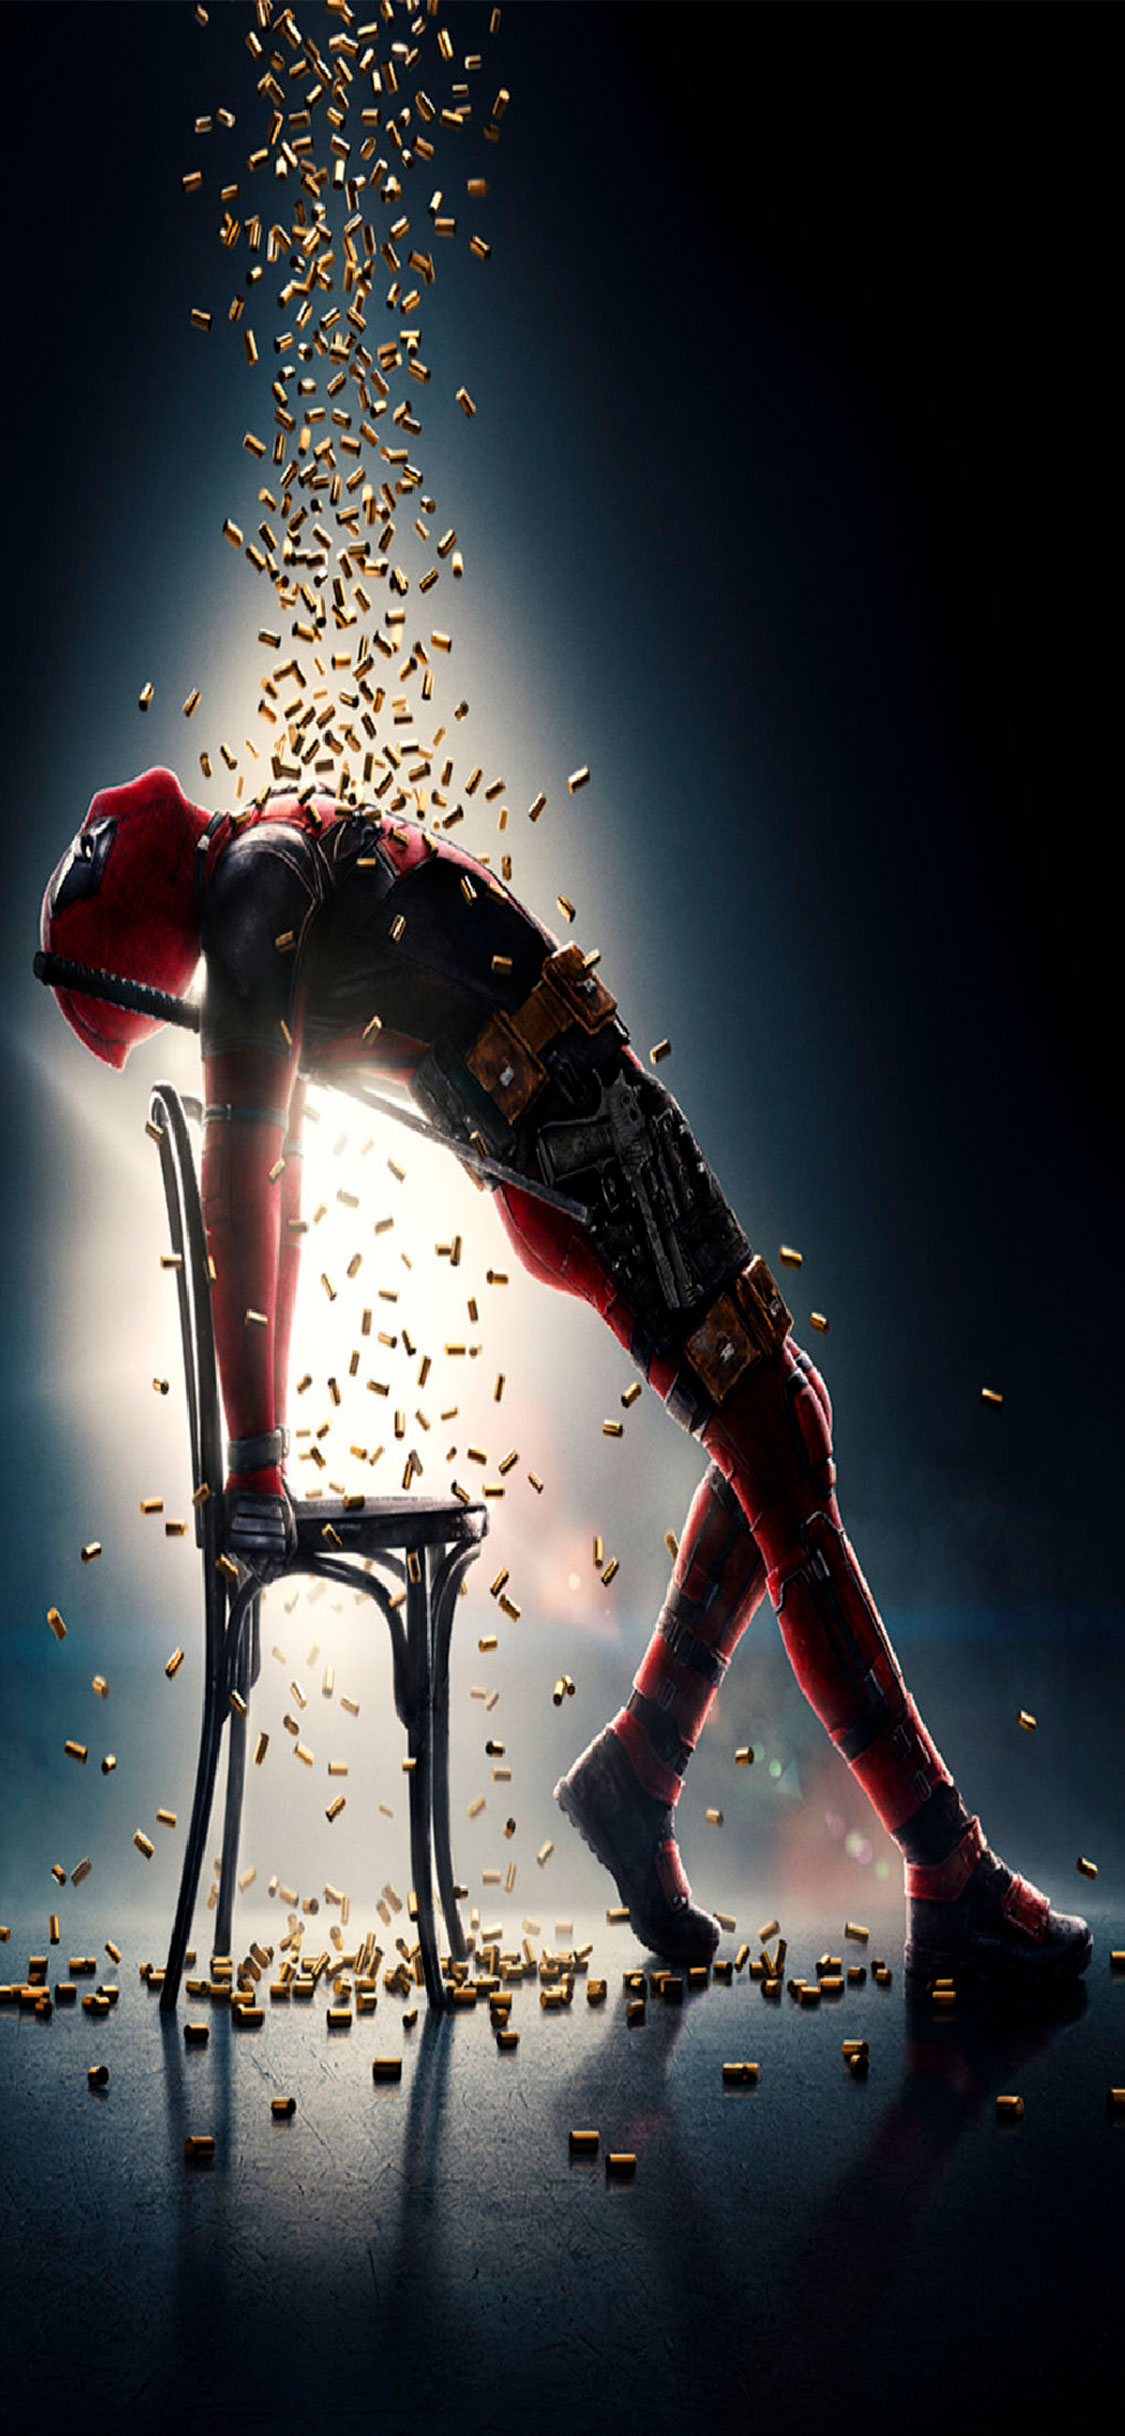 deadpool wallpaper for iphone x, 8, 7, 6 - free download on 3wallpapers